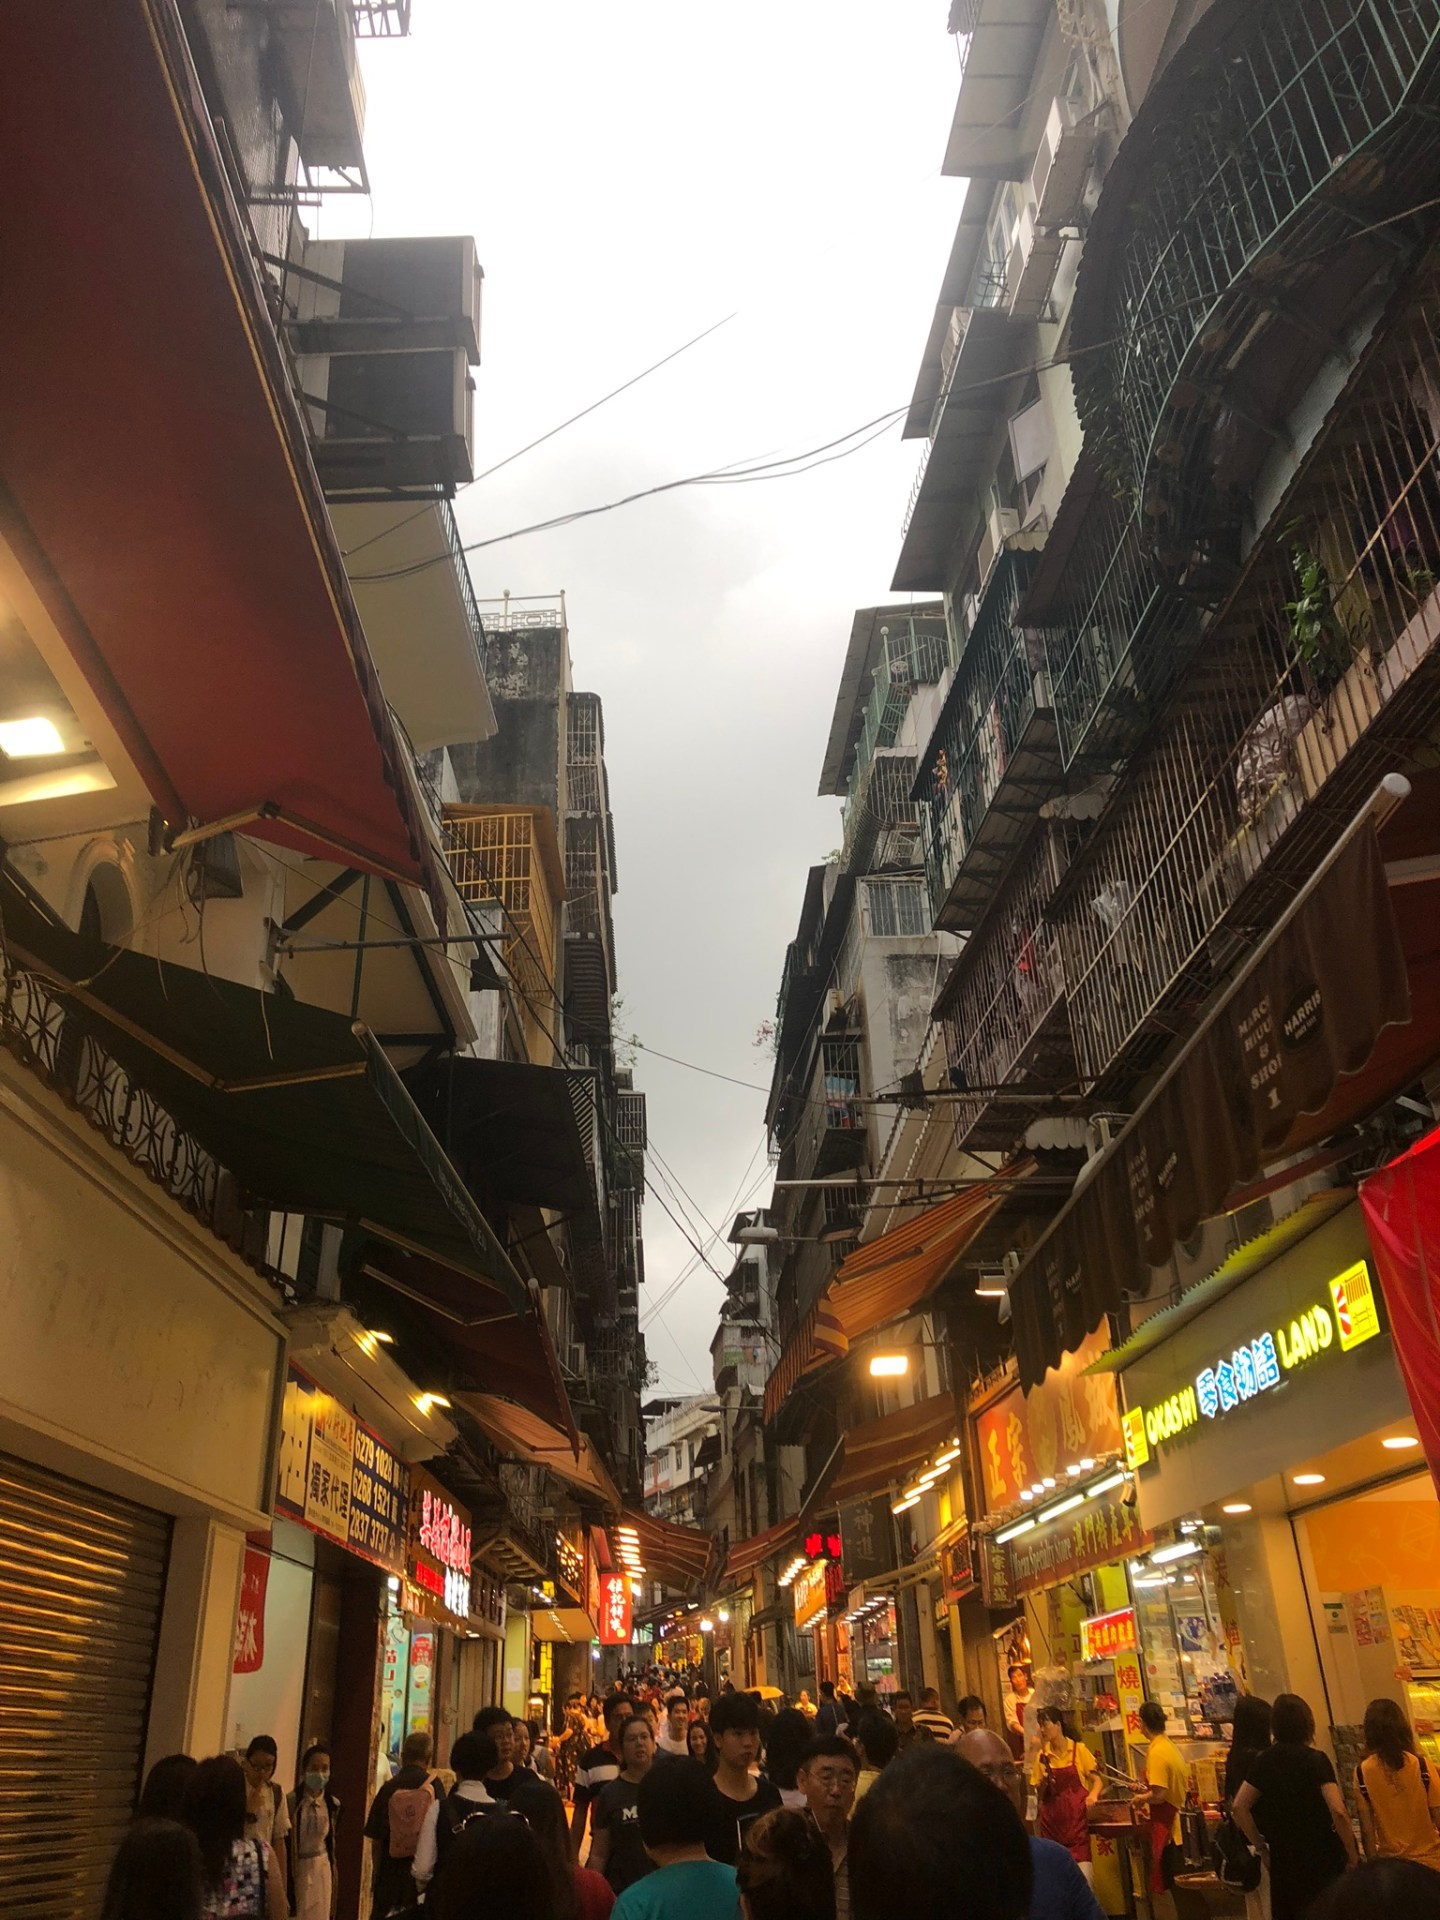 The streets of Macau, China